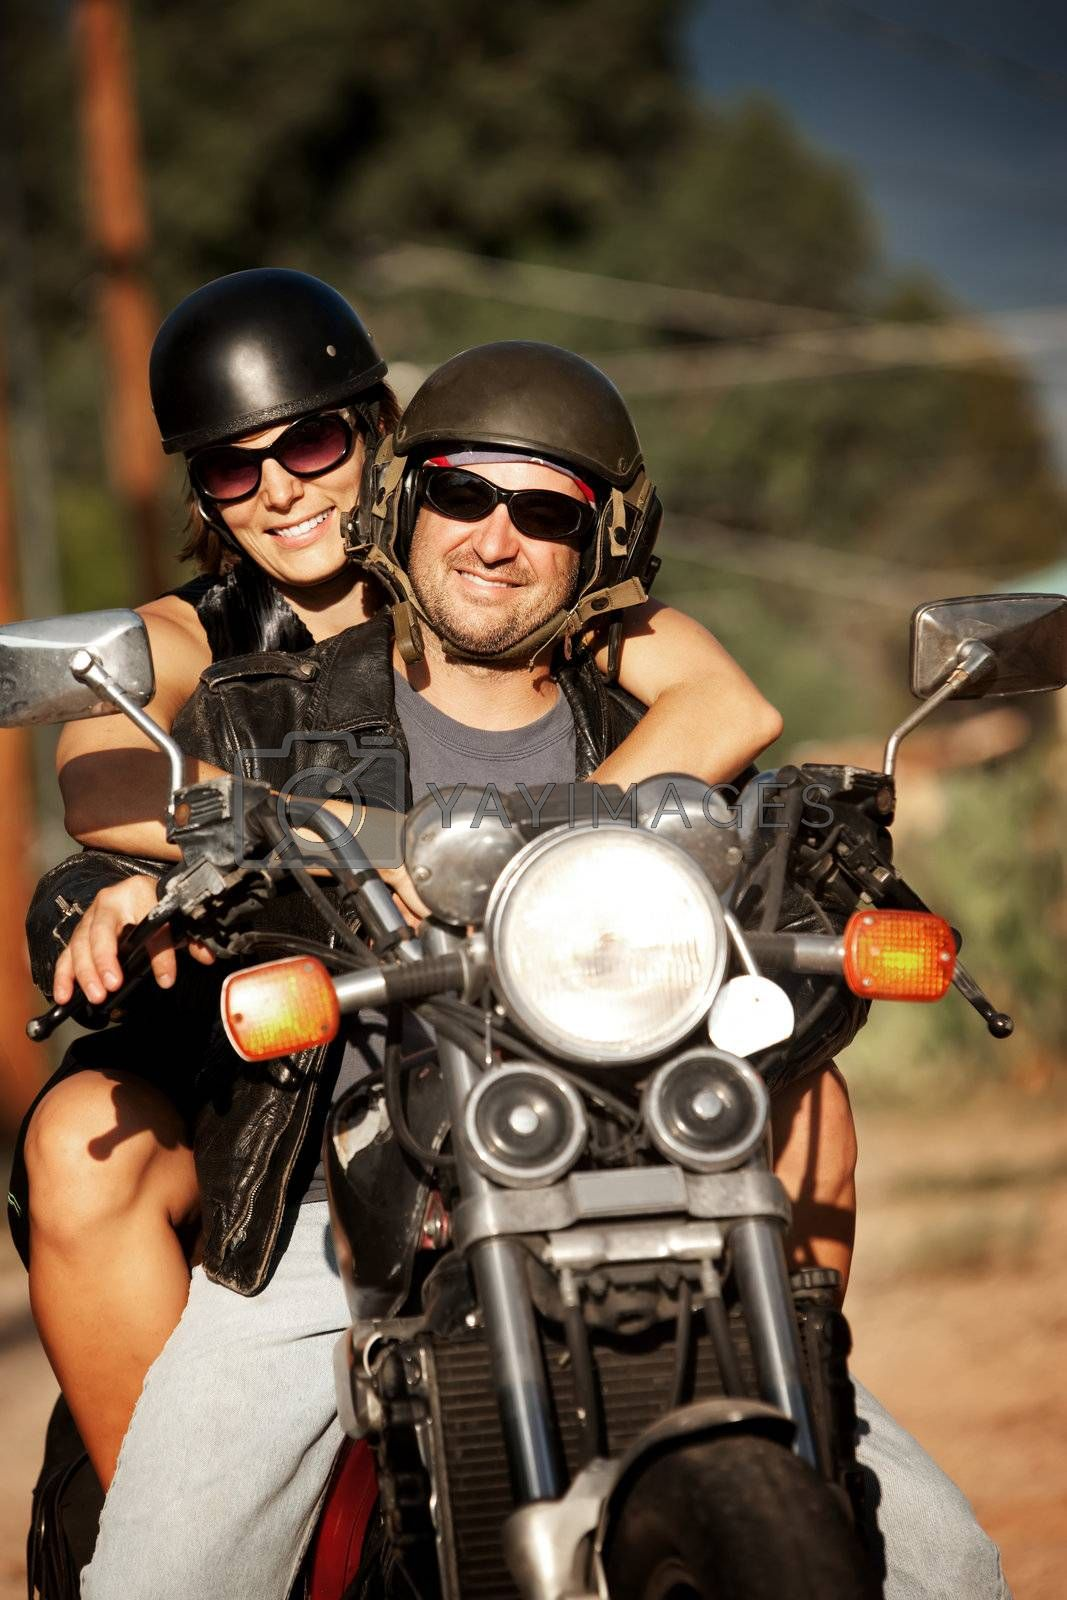 Royalty free image of Man and Woman on Motorcycle by Creatista